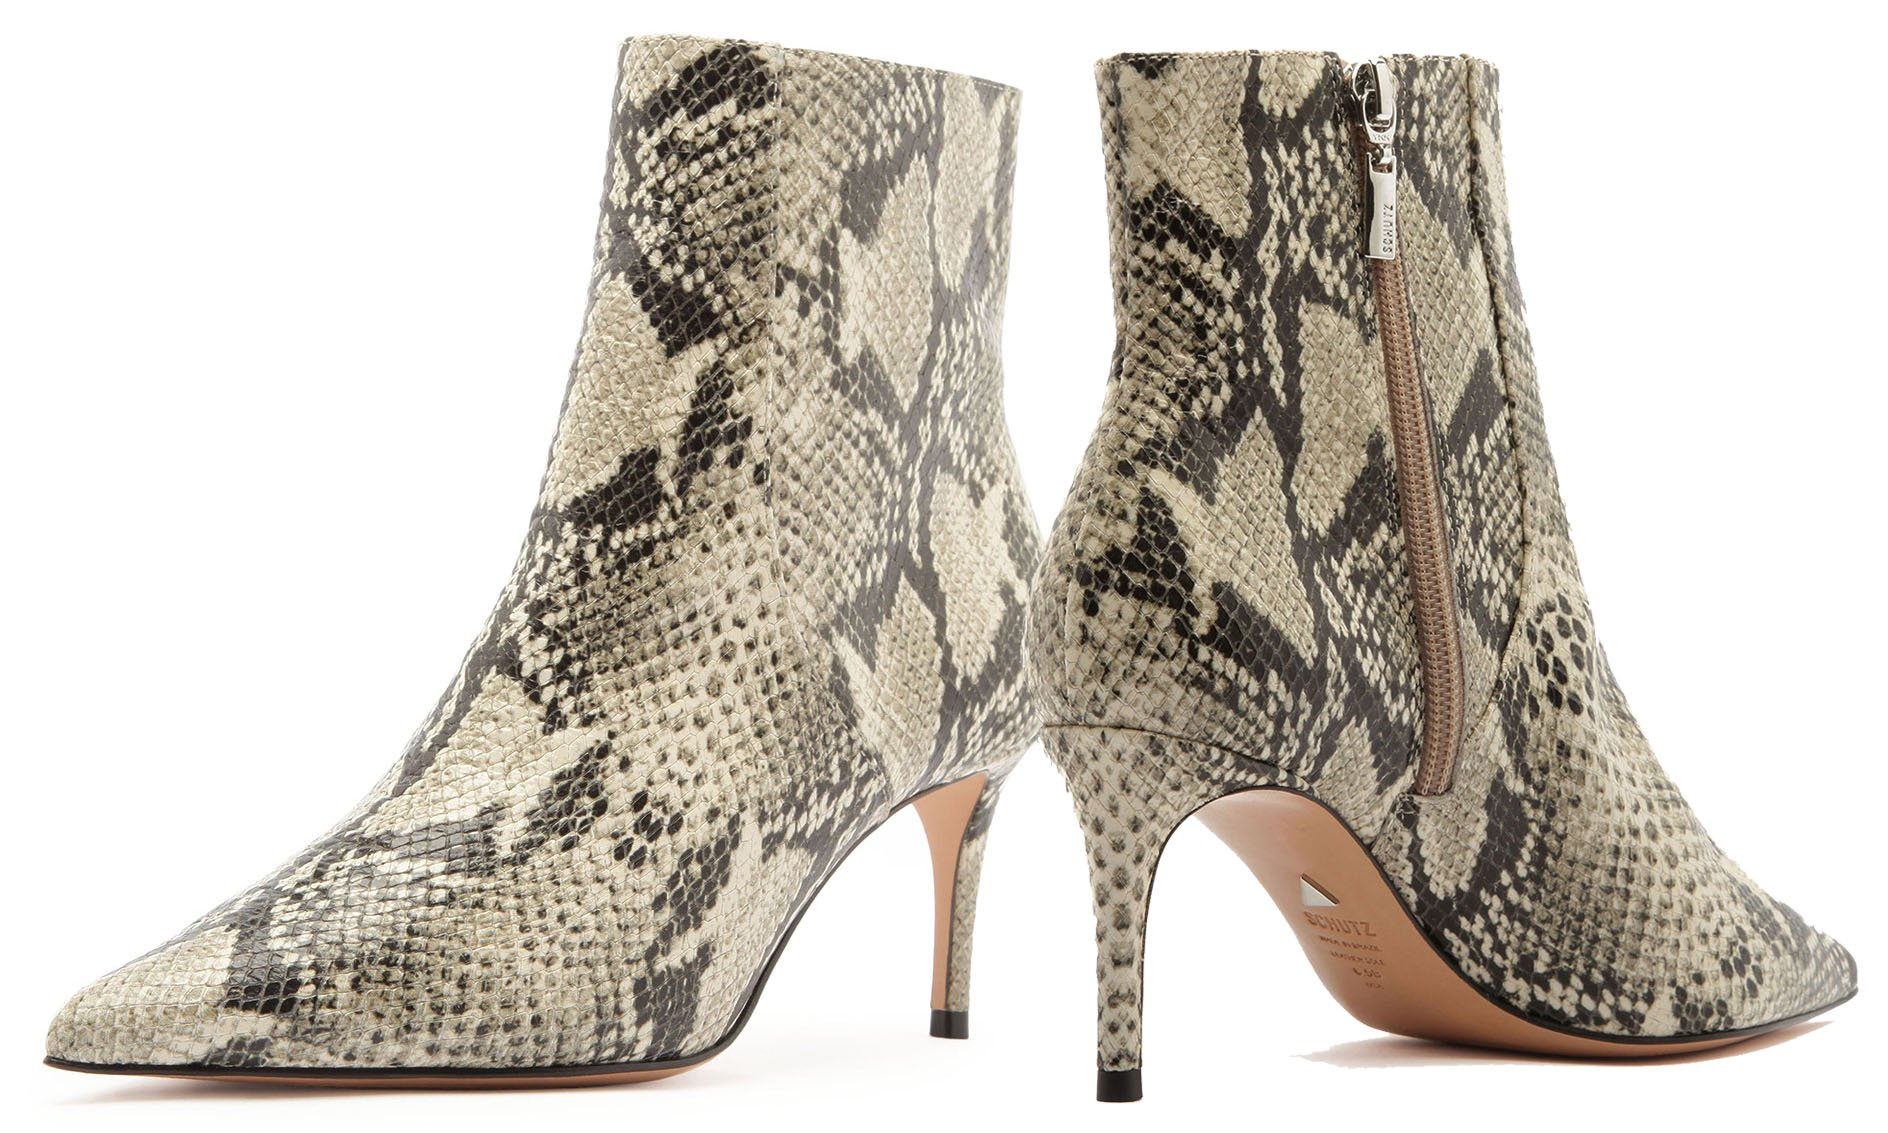 Wear a pair of Schutz Bette snake-print ankle boots with leggings for a stylish winter date night